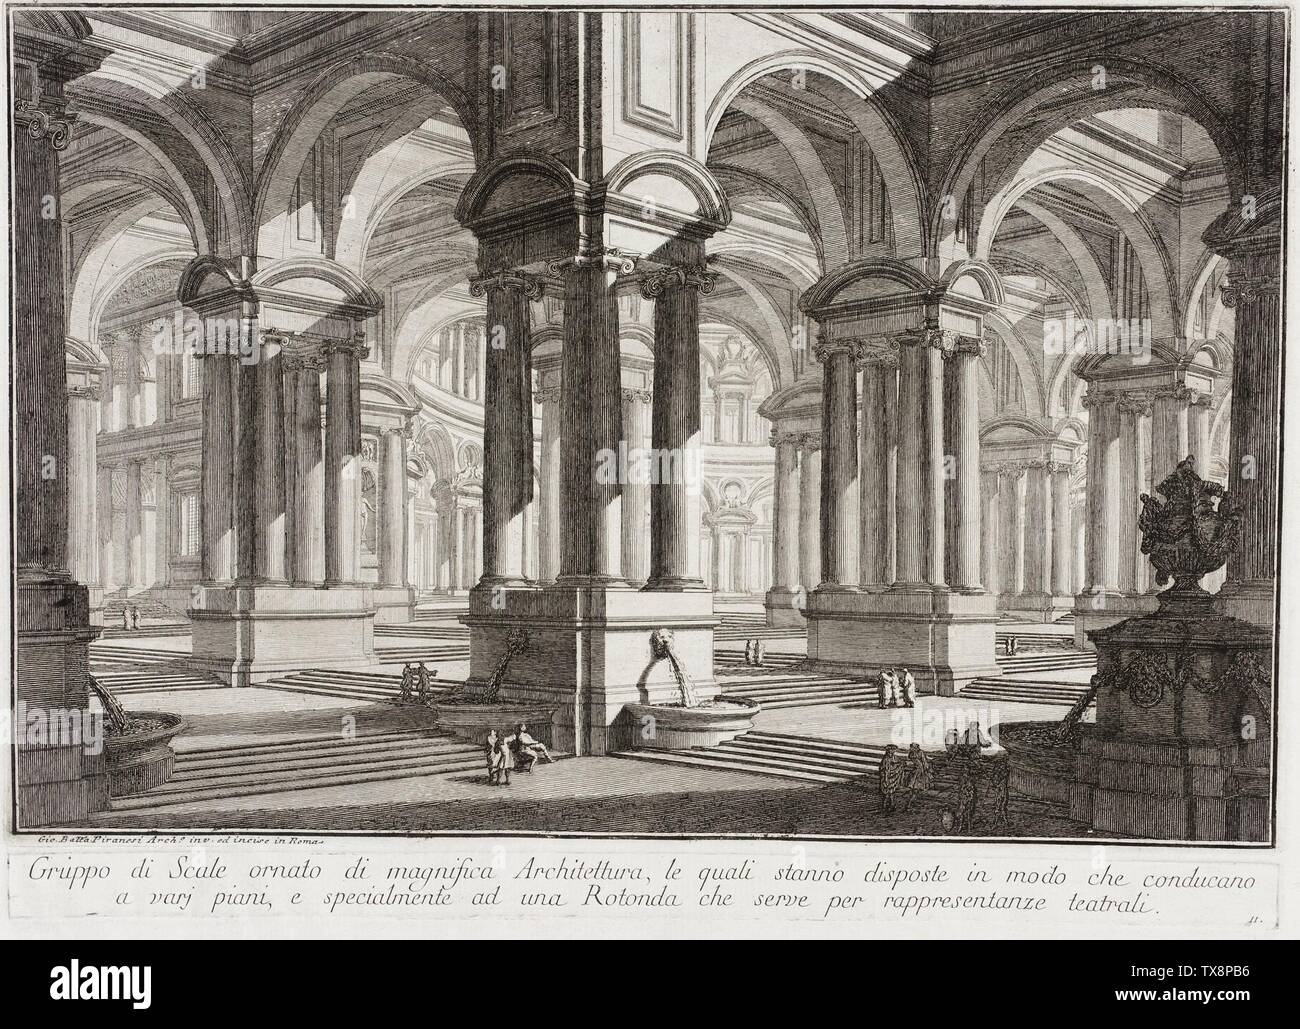 """""""Magnificent Architectural Space; English:  Italy, circa 1743 Alternate Title: Loco magnifico d'Architettura Series: Prima Parte di Architetture e Prospettive, plate 11 Edition: First edition, third issue Prints; engravings Etching with engraving and drypoint Sheet: 13 3/4 x 18 1/16 in. (34.93 x 45.88 cm); plate: 9 13/16 x 14 3/4 in. (24.92 x 37.47 cm) Purchased with funds provided by Patricia and Michael Forman (AC1995.54.1.11) Prints and Drawings; circa 1743 date QS:P571,+1743-00-00T00:00:00Z/9,P1480,Q5727902; """" Stock Photo"""